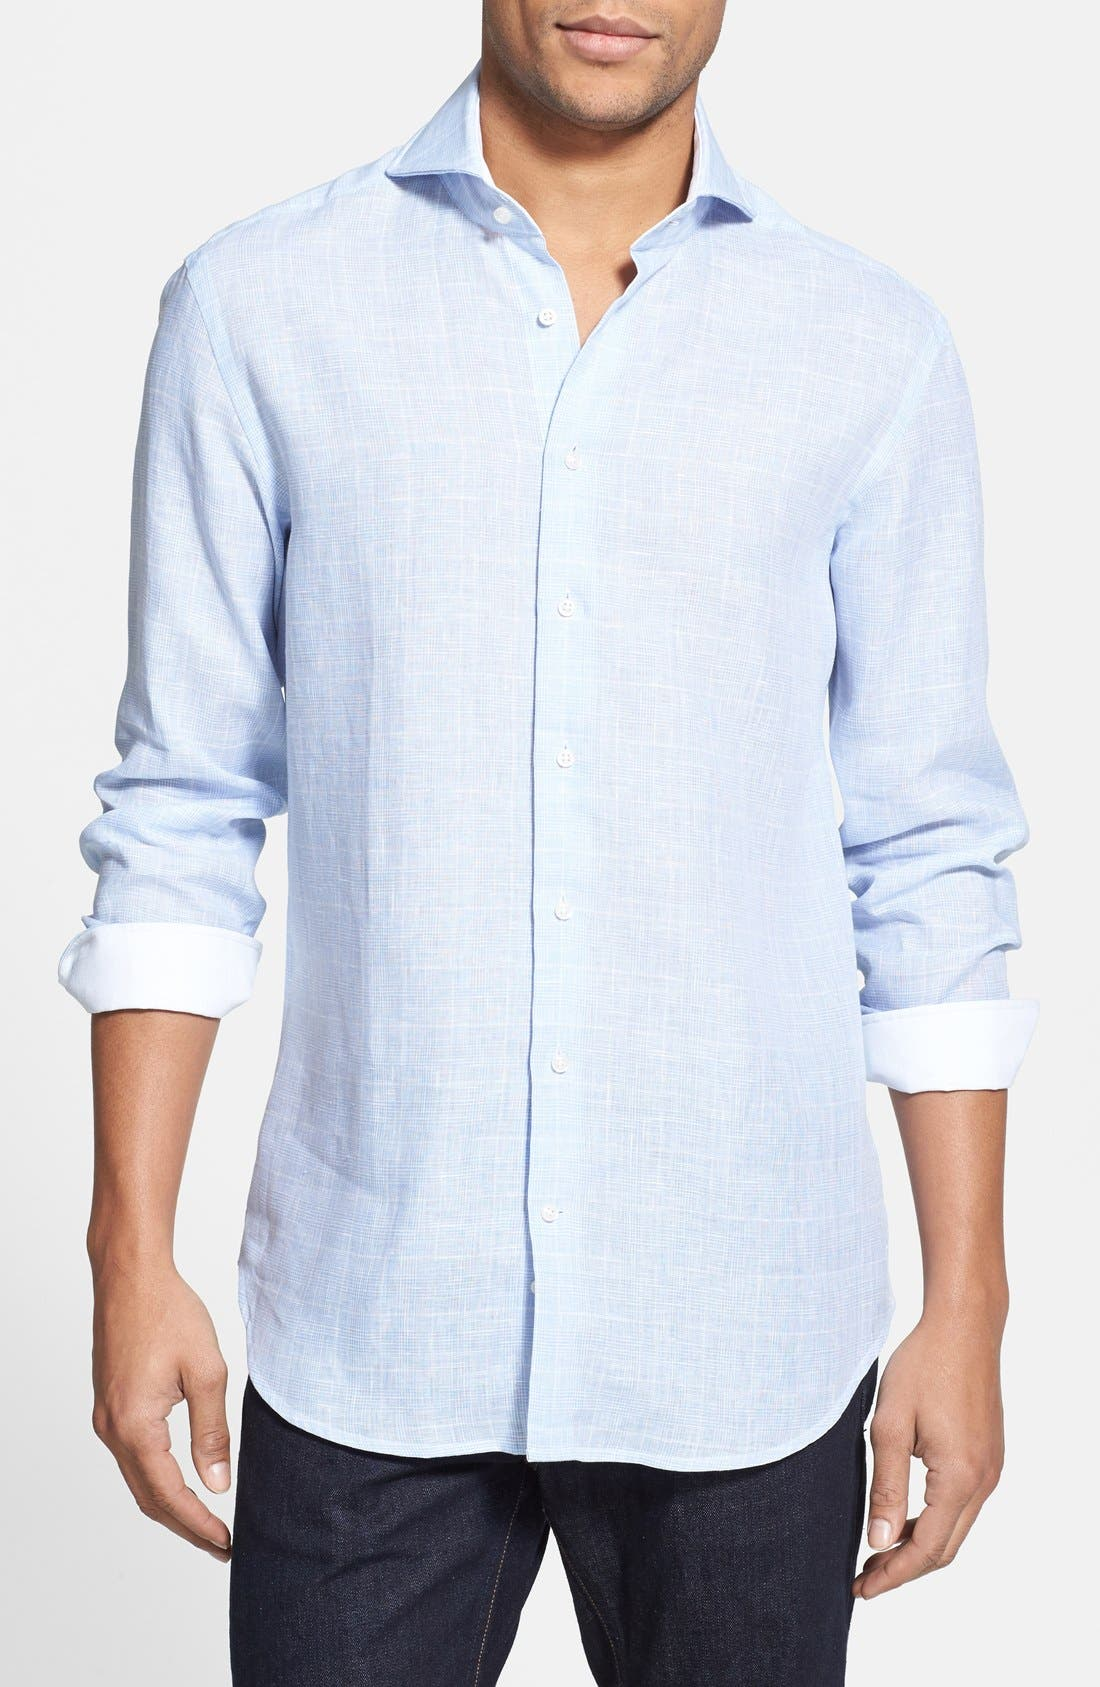 Alternate Image 1 Selected - Kent and Curwen Trim Fit Prince of Wales Linen Sport Shirt